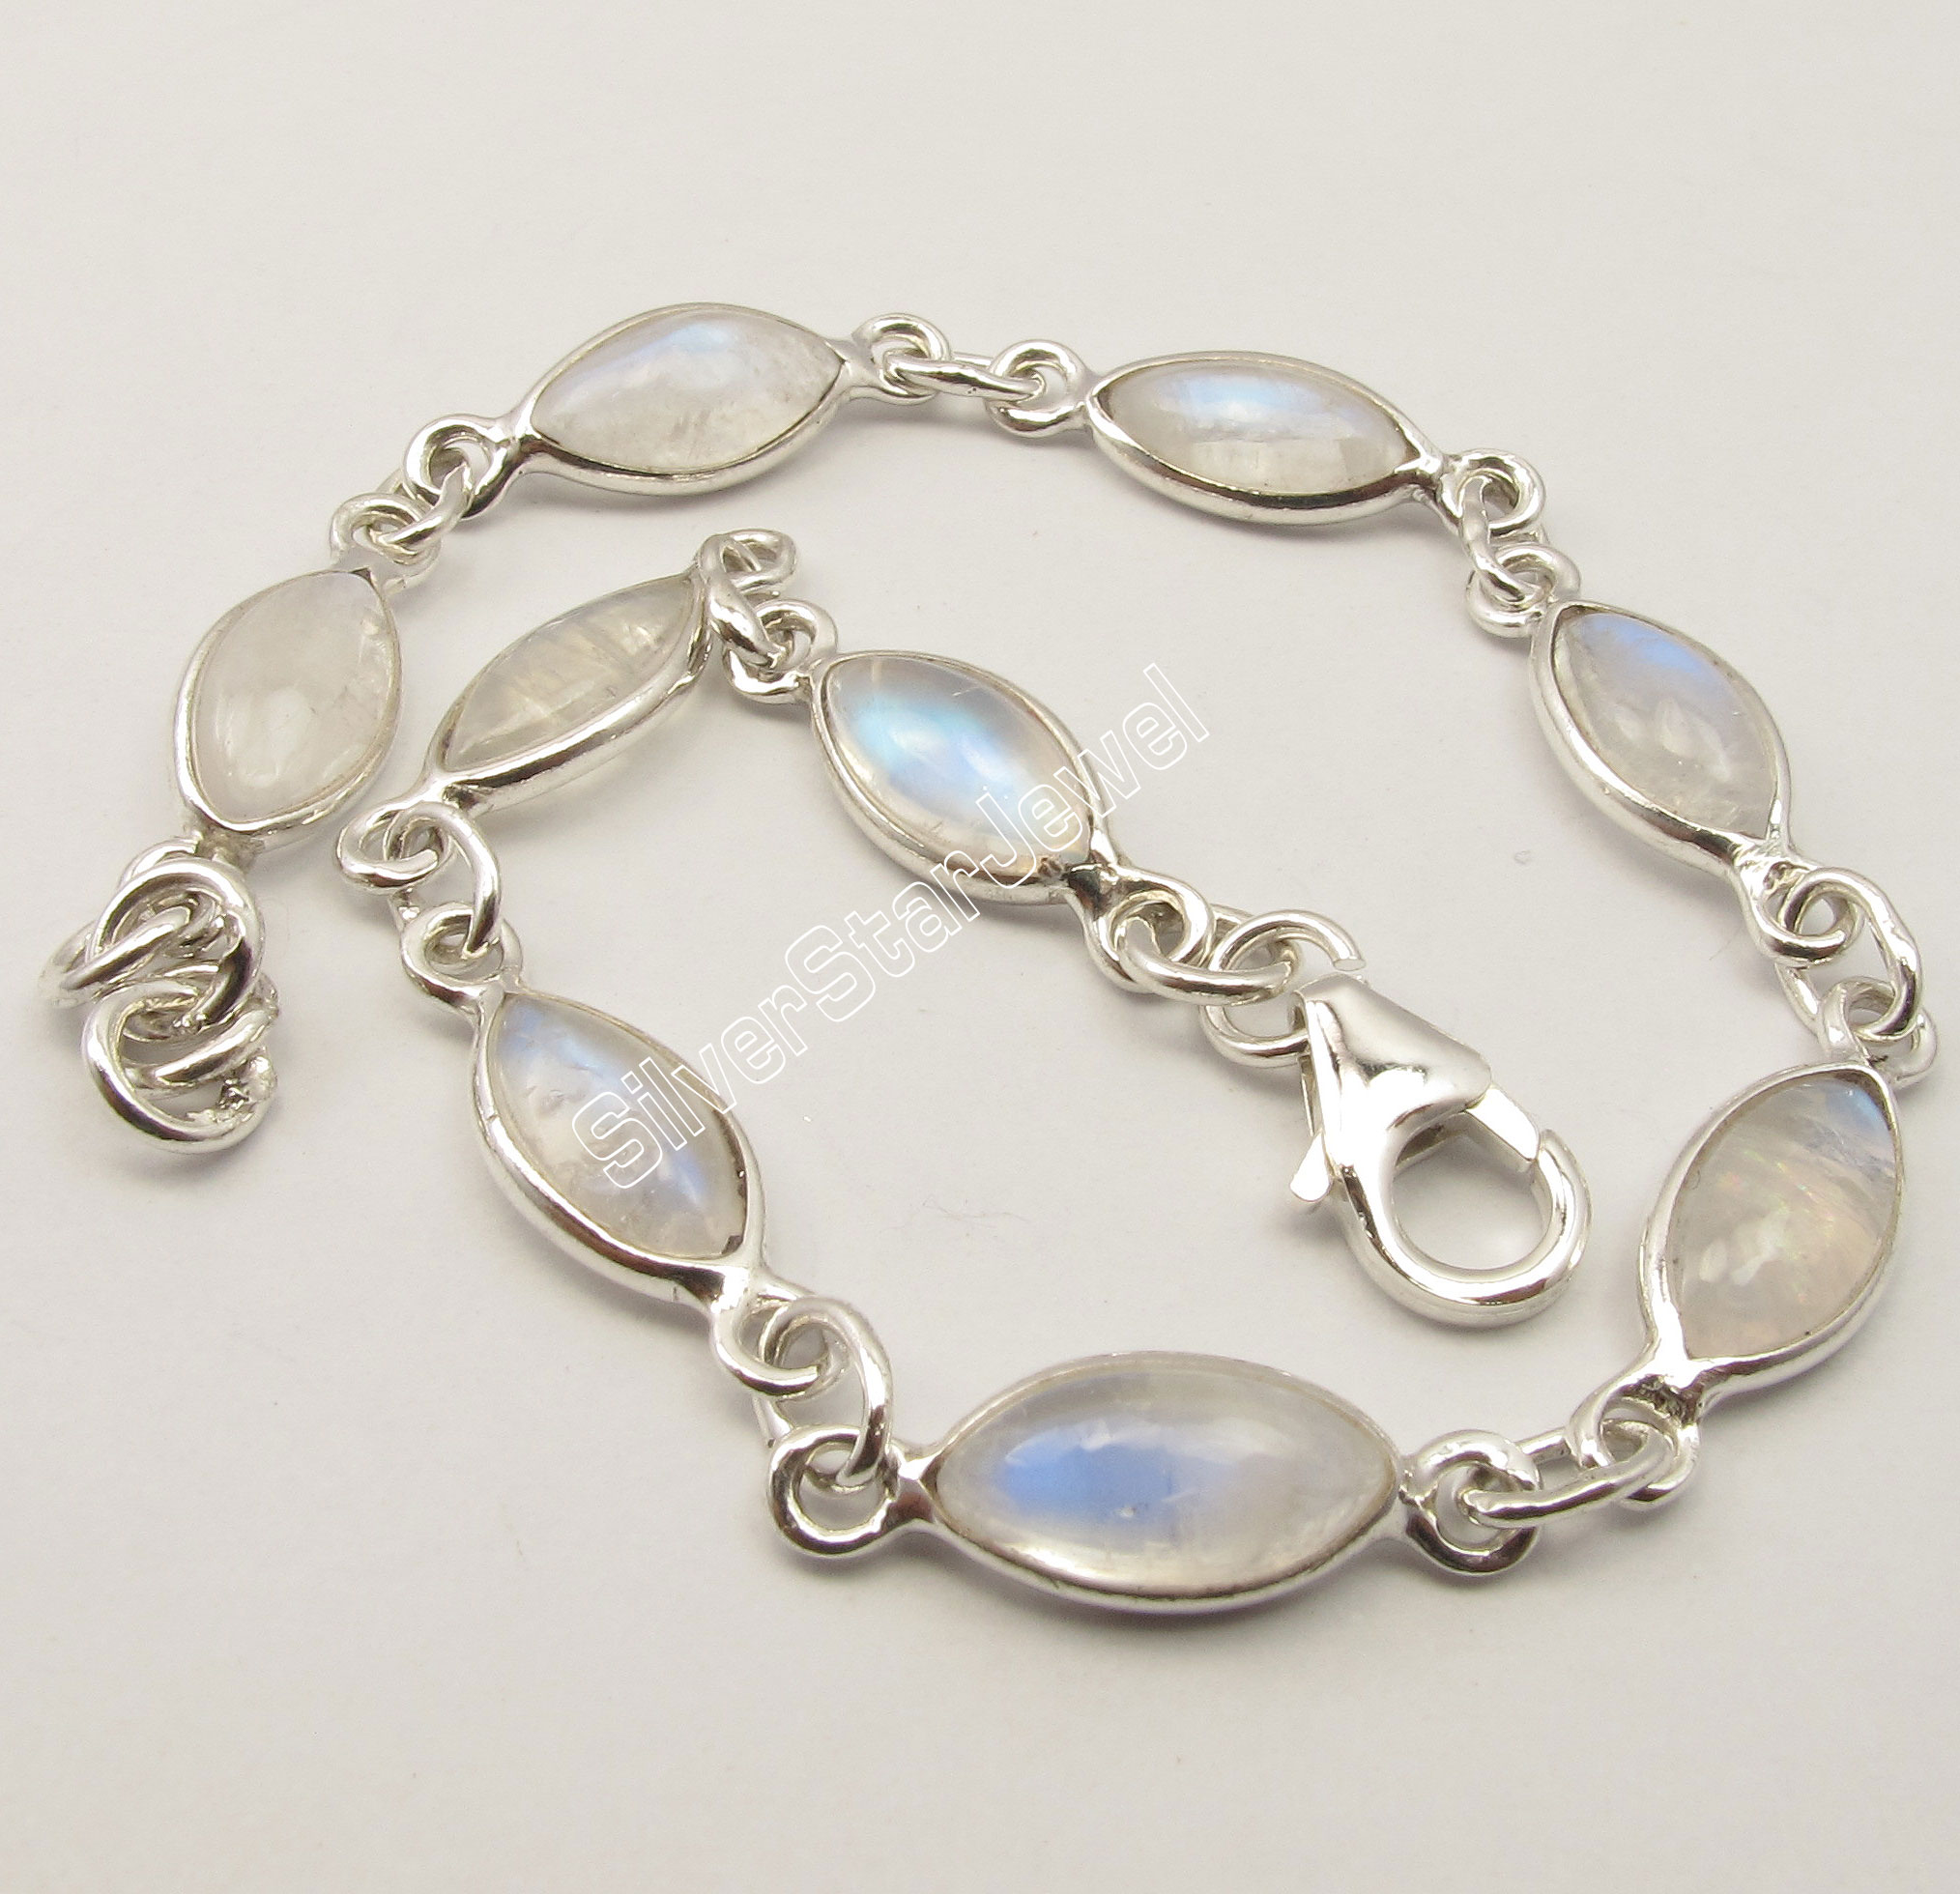 Chanti International Silver MARQUISE RAINBOW MOONSTONE LOVELY Bracelet 7 7/8